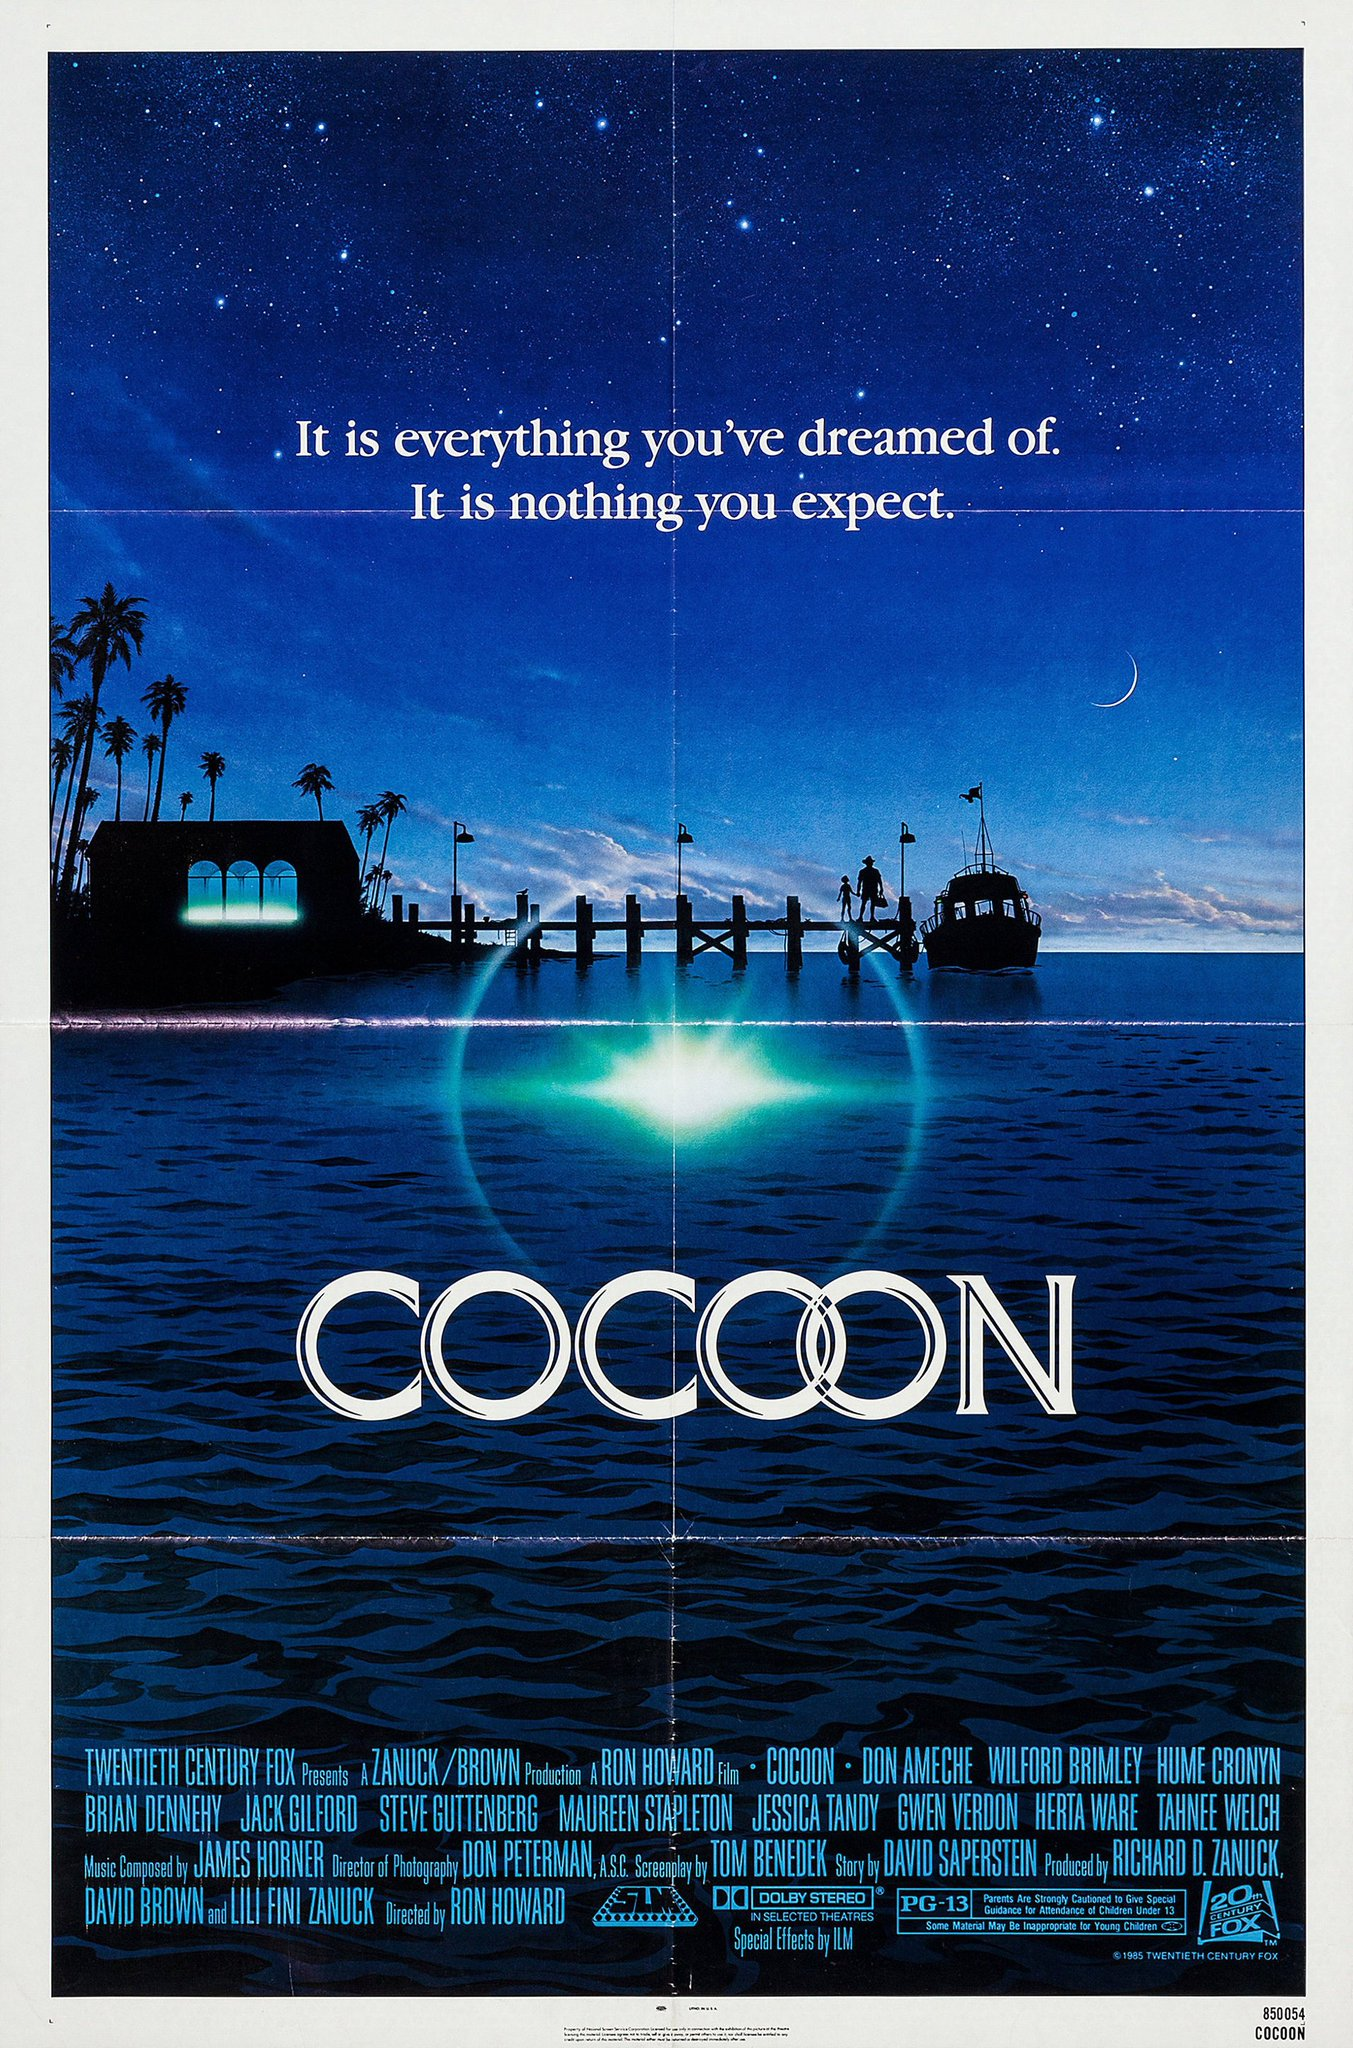 COCOON opened in theaters on this day in 1985. Poster art by John Alvin. https://t.co/Z9rcxhZaID